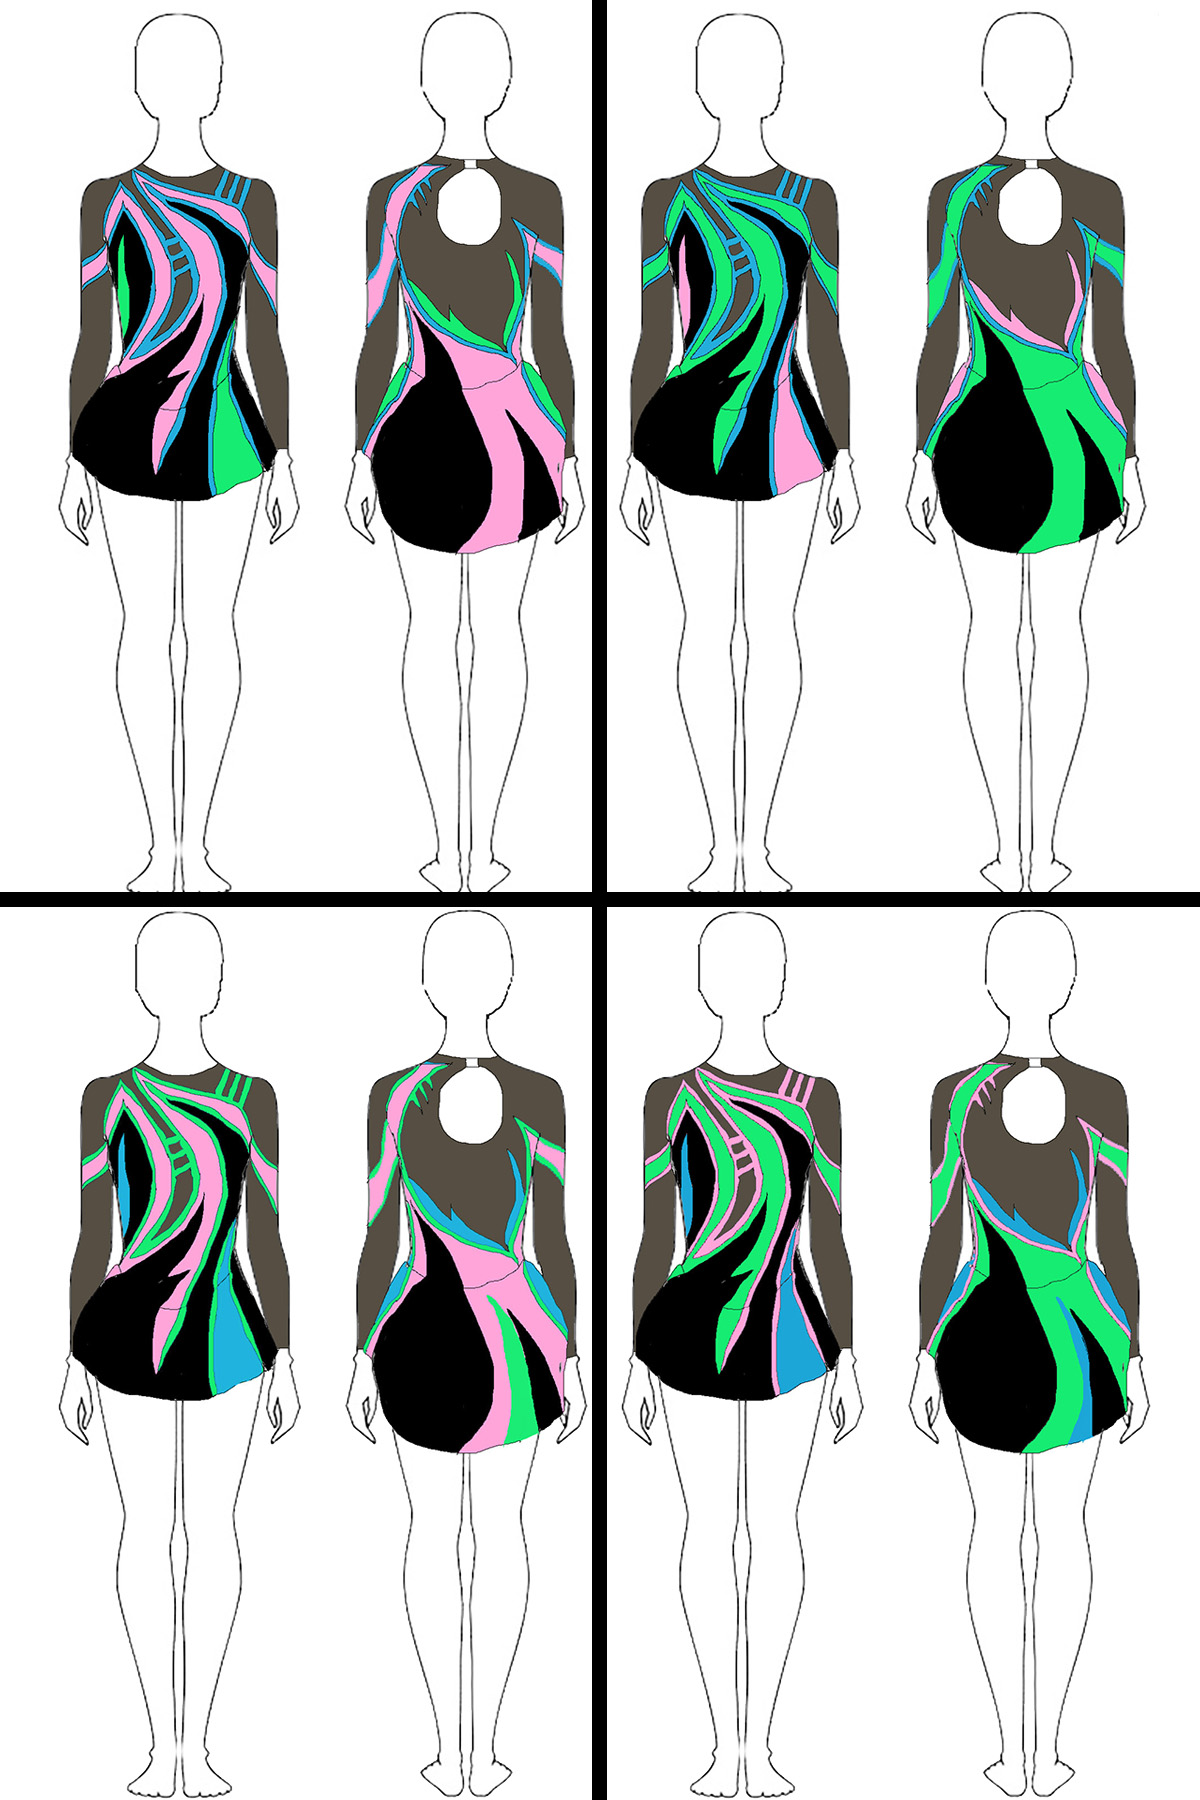 A series of sketches showing front and back views of 4 skating dresses. Each has the same graphic design, but with the placement of the colours moved around.